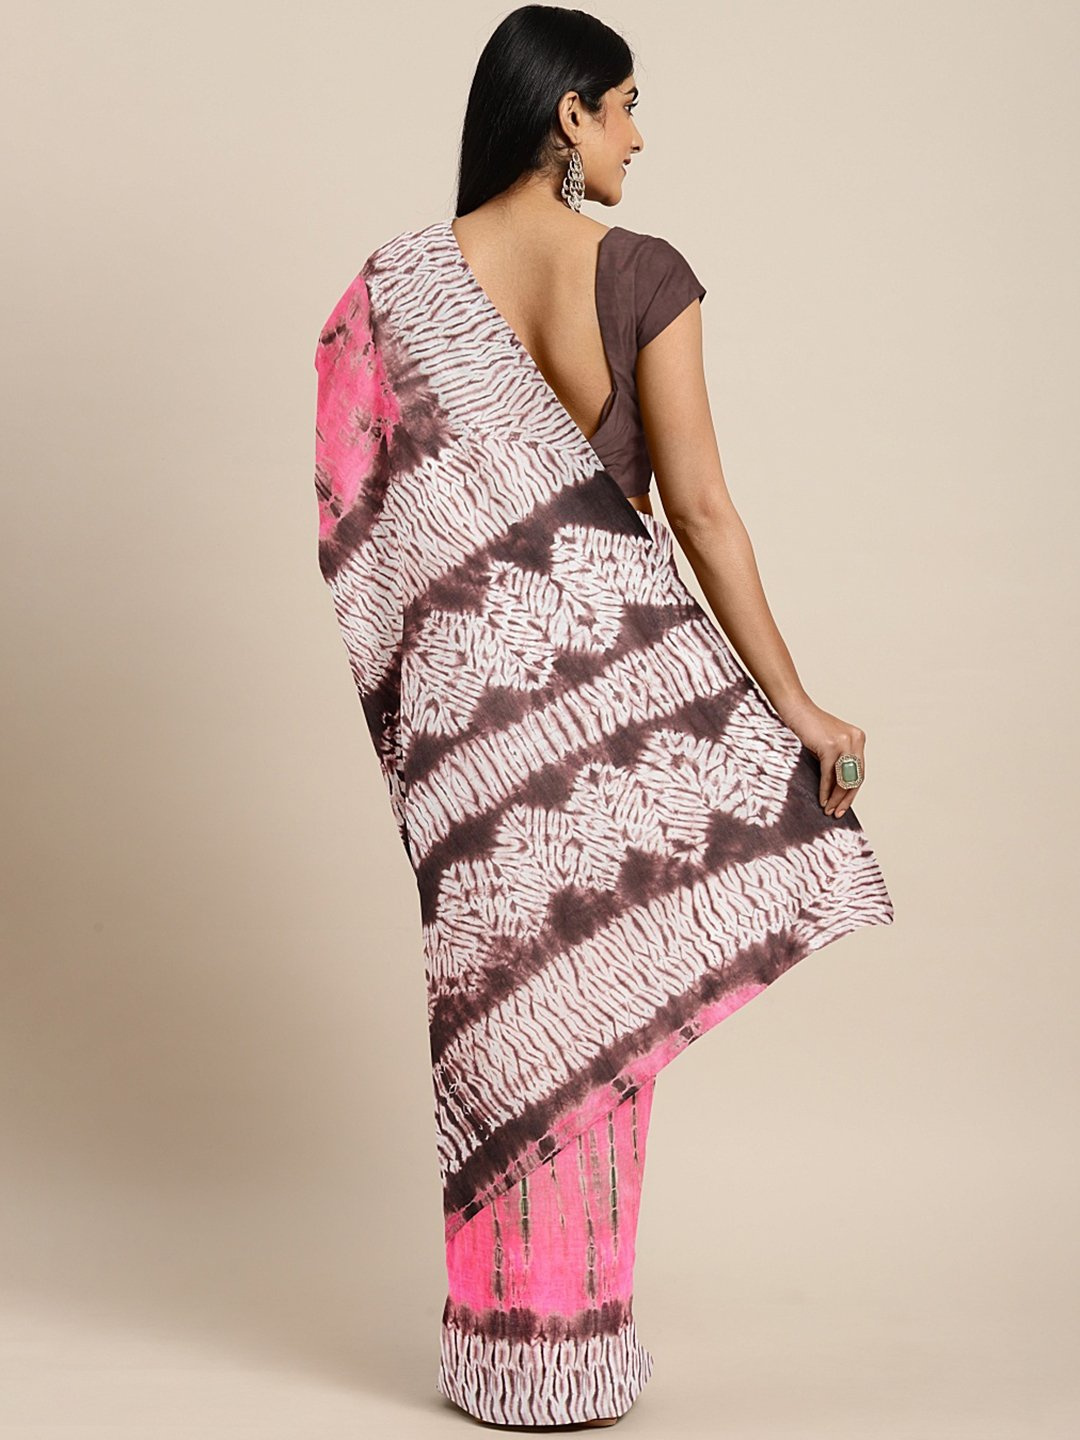 Pink Brown Pure Cotton Handcrafted Printed Bagru Saree-Saree-Kalakari India-BHKPSA0081-Cotton, Geographical Indication, Hand Blocks, Hand Crafted, Heritage Prints, Sarees, Shibori, Sustainable Fabrics-[Linen,Ethnic,wear,Fashionista,Handloom,Handicraft,Indigo,blockprint,block,print,Cotton,Chanderi,Blue, latest,classy,party,bollywood,trendy,summer,style,traditional,formal,elegant,unique,style,hand,block,print, dabu,booti,gift,present,glamorous,affordable,collectible,Sari,Saree,printed, holi, Diwal